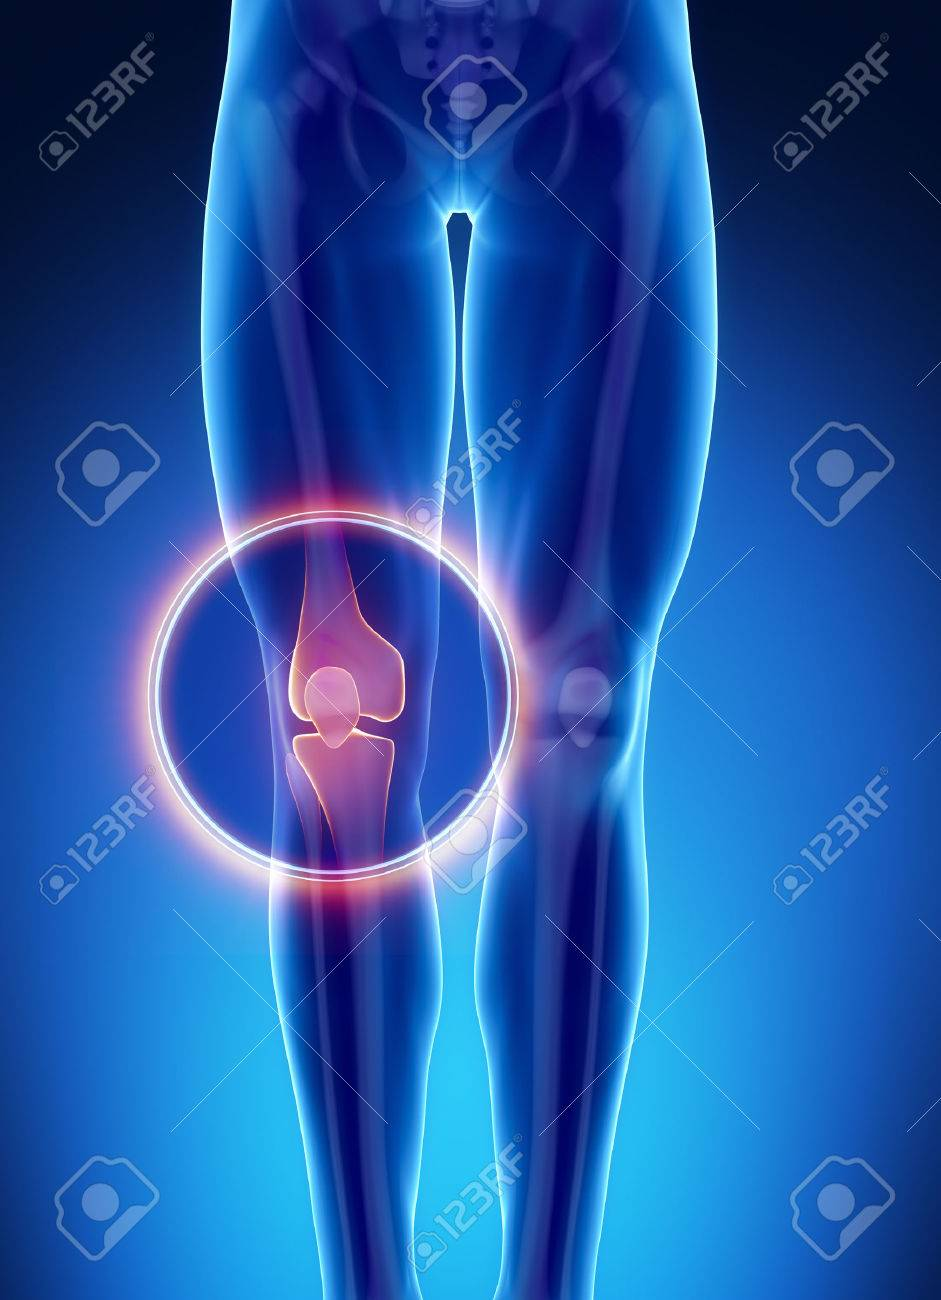 Male Bone Anatomy Knee Stock Photo, Picture And Royalty Free Image ...